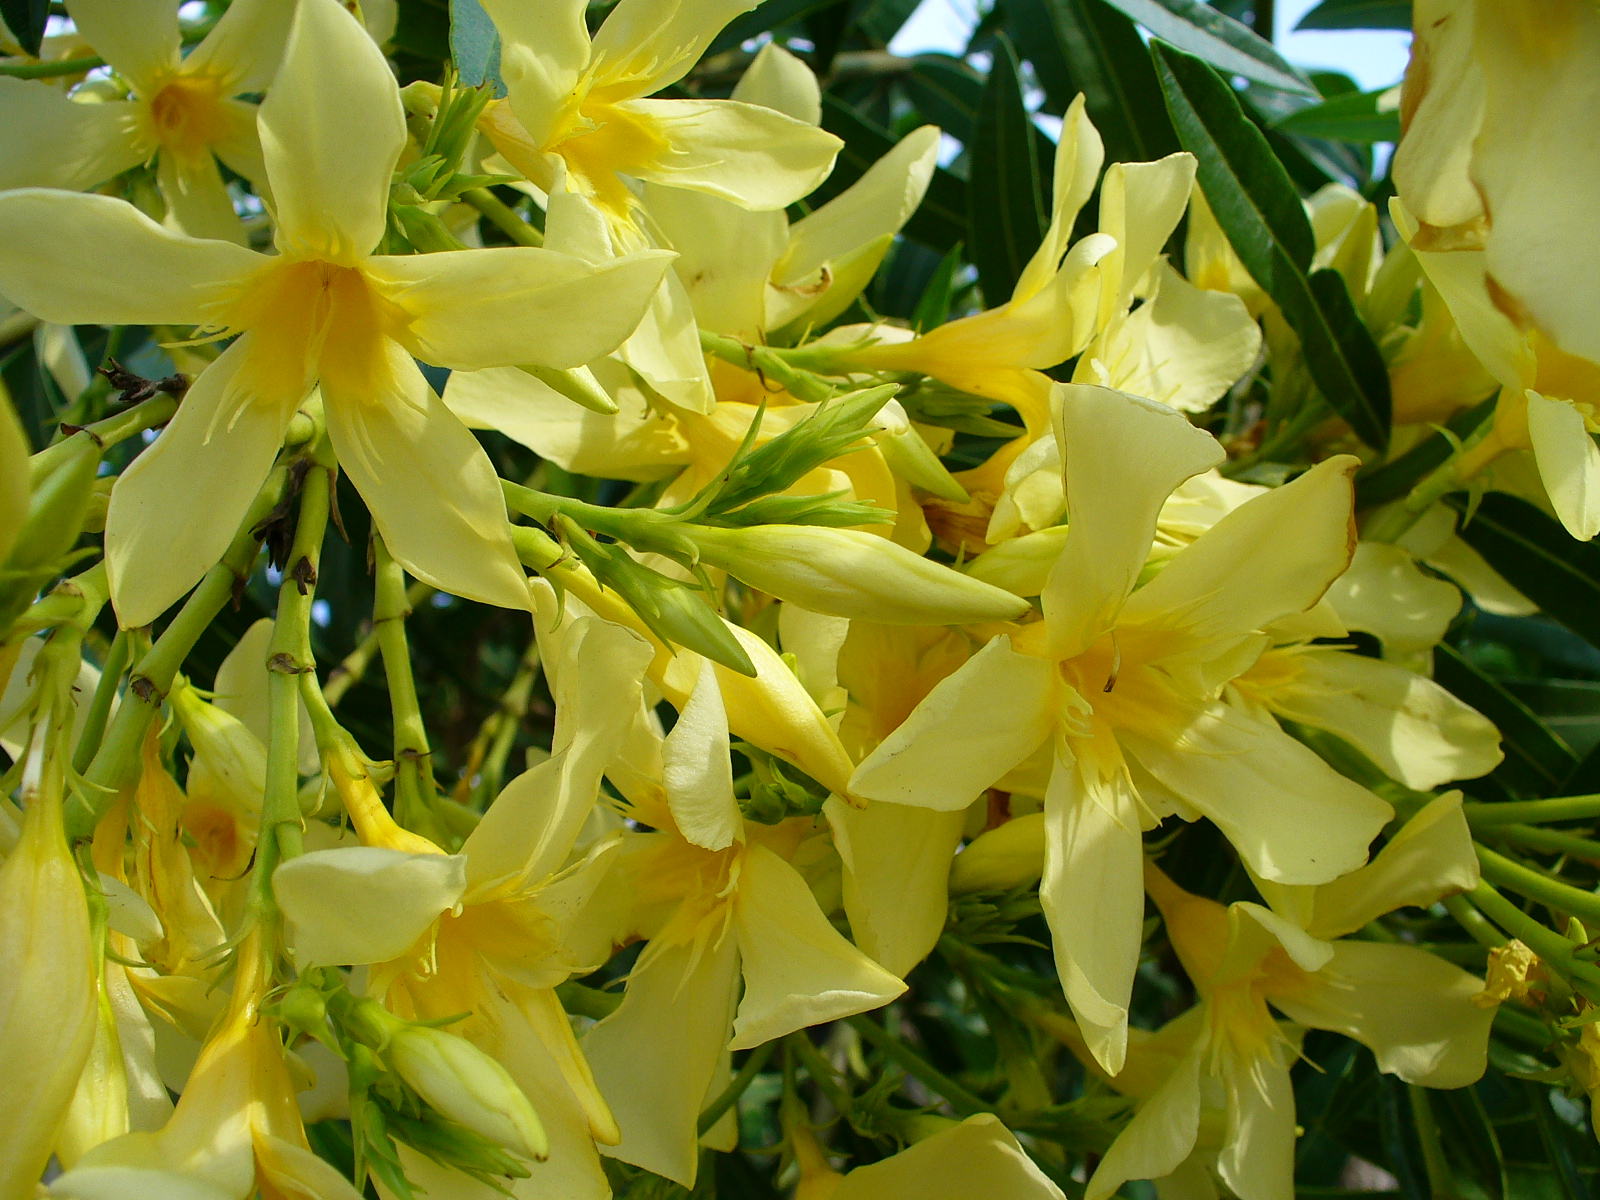 Kaner nerium oleander yellow double plant plantslive buy kaner nerium oleander yellow double plant plantslive buy plants online india mightylinksfo